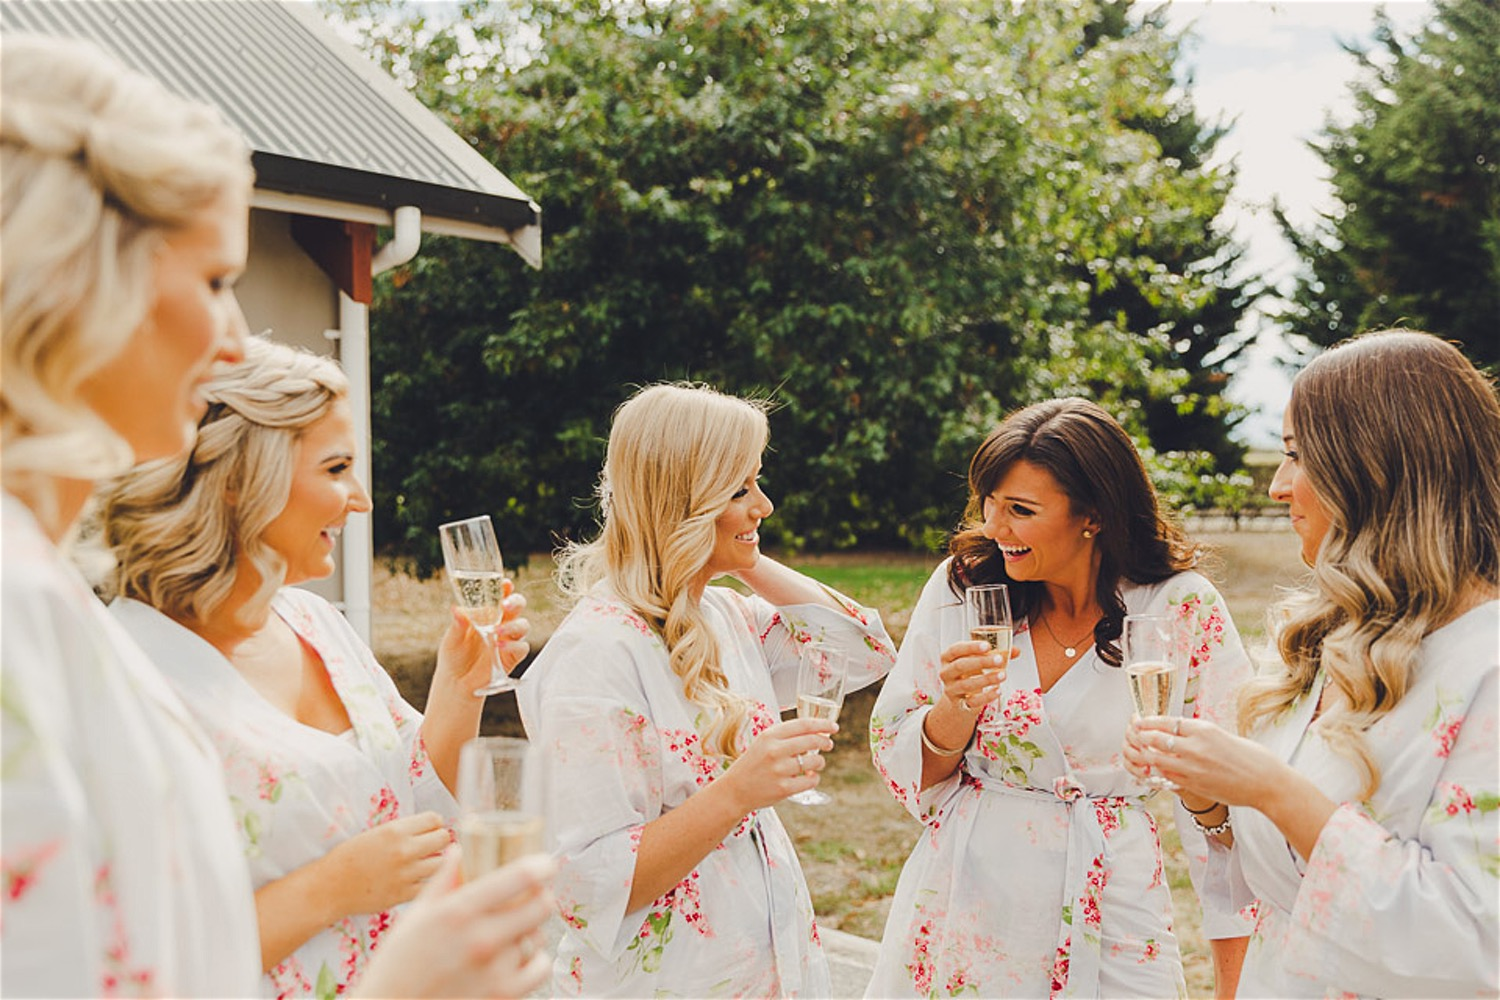 bridesmaids, wedding, bridal party, maid of honour, dress, style, timeline, planning, vendors, co-ordination, guests, support, bridal